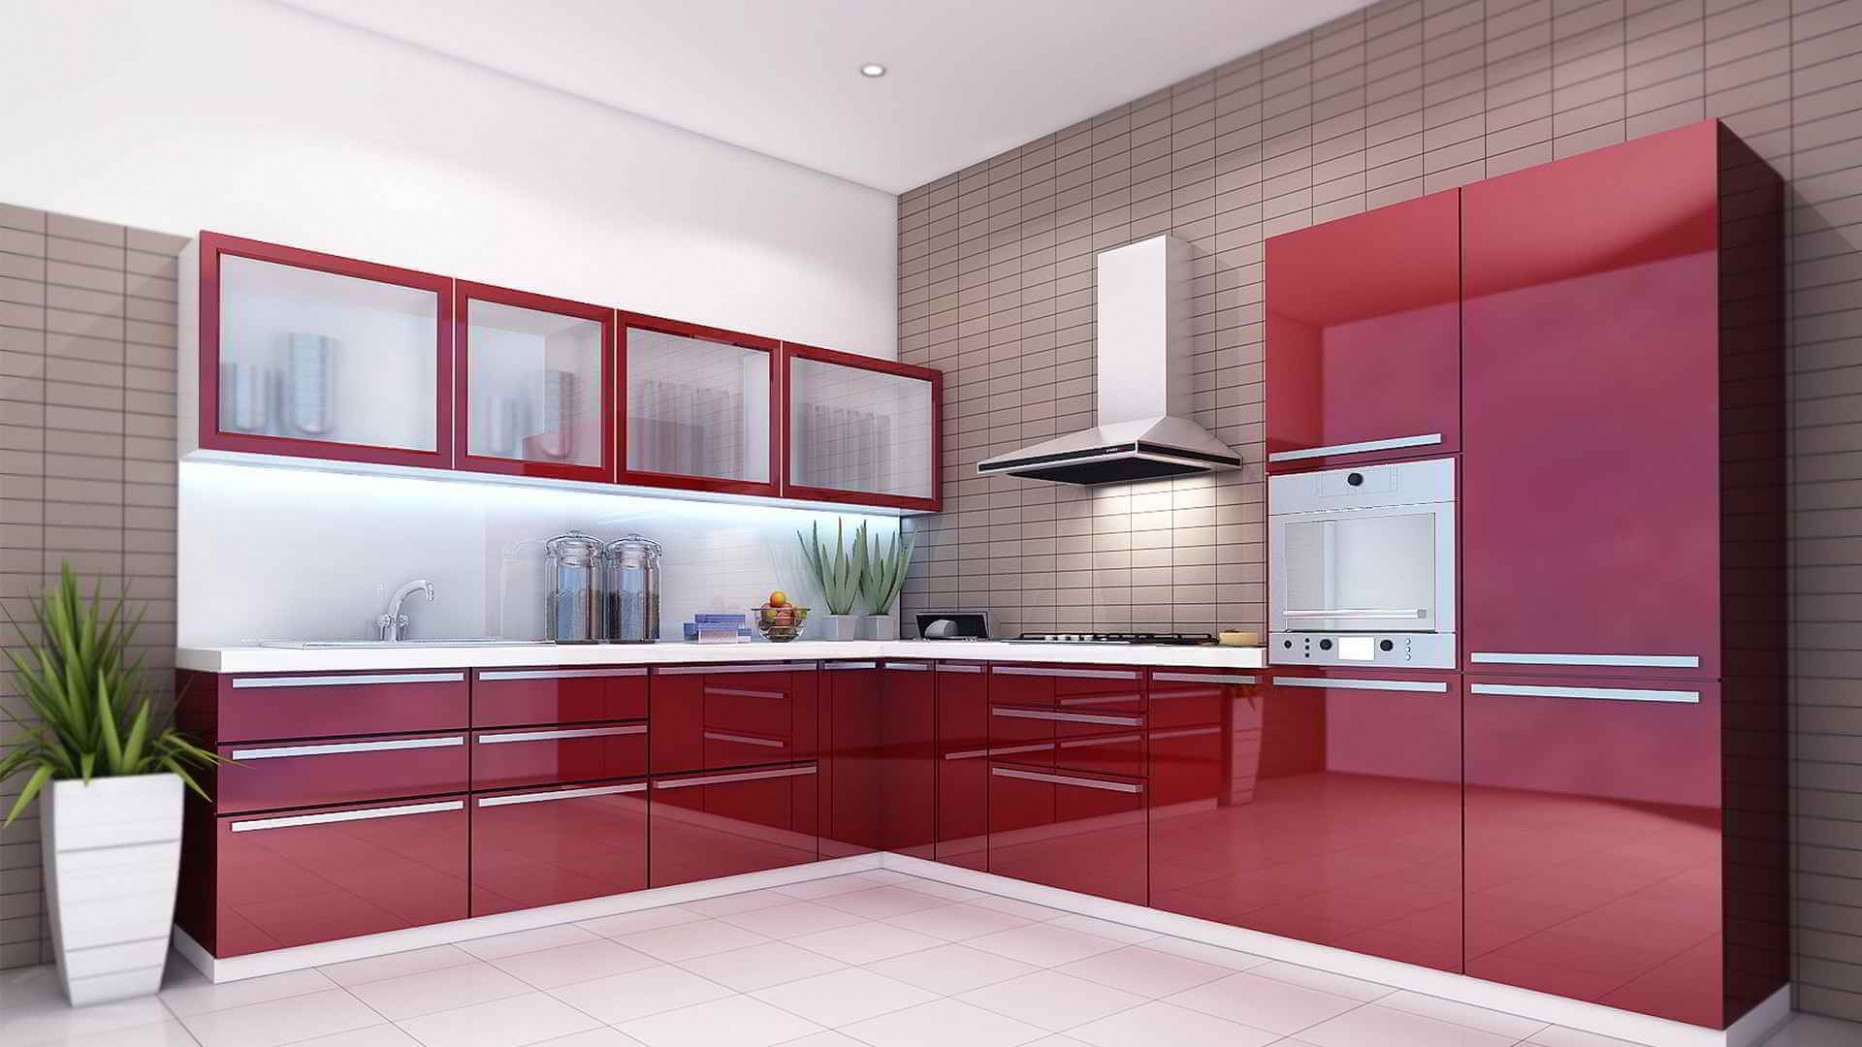 Which are the Best Materials & Finishes to Use in Modular Kitchen? - Used Modular Kitchen Cabinets Bangalore